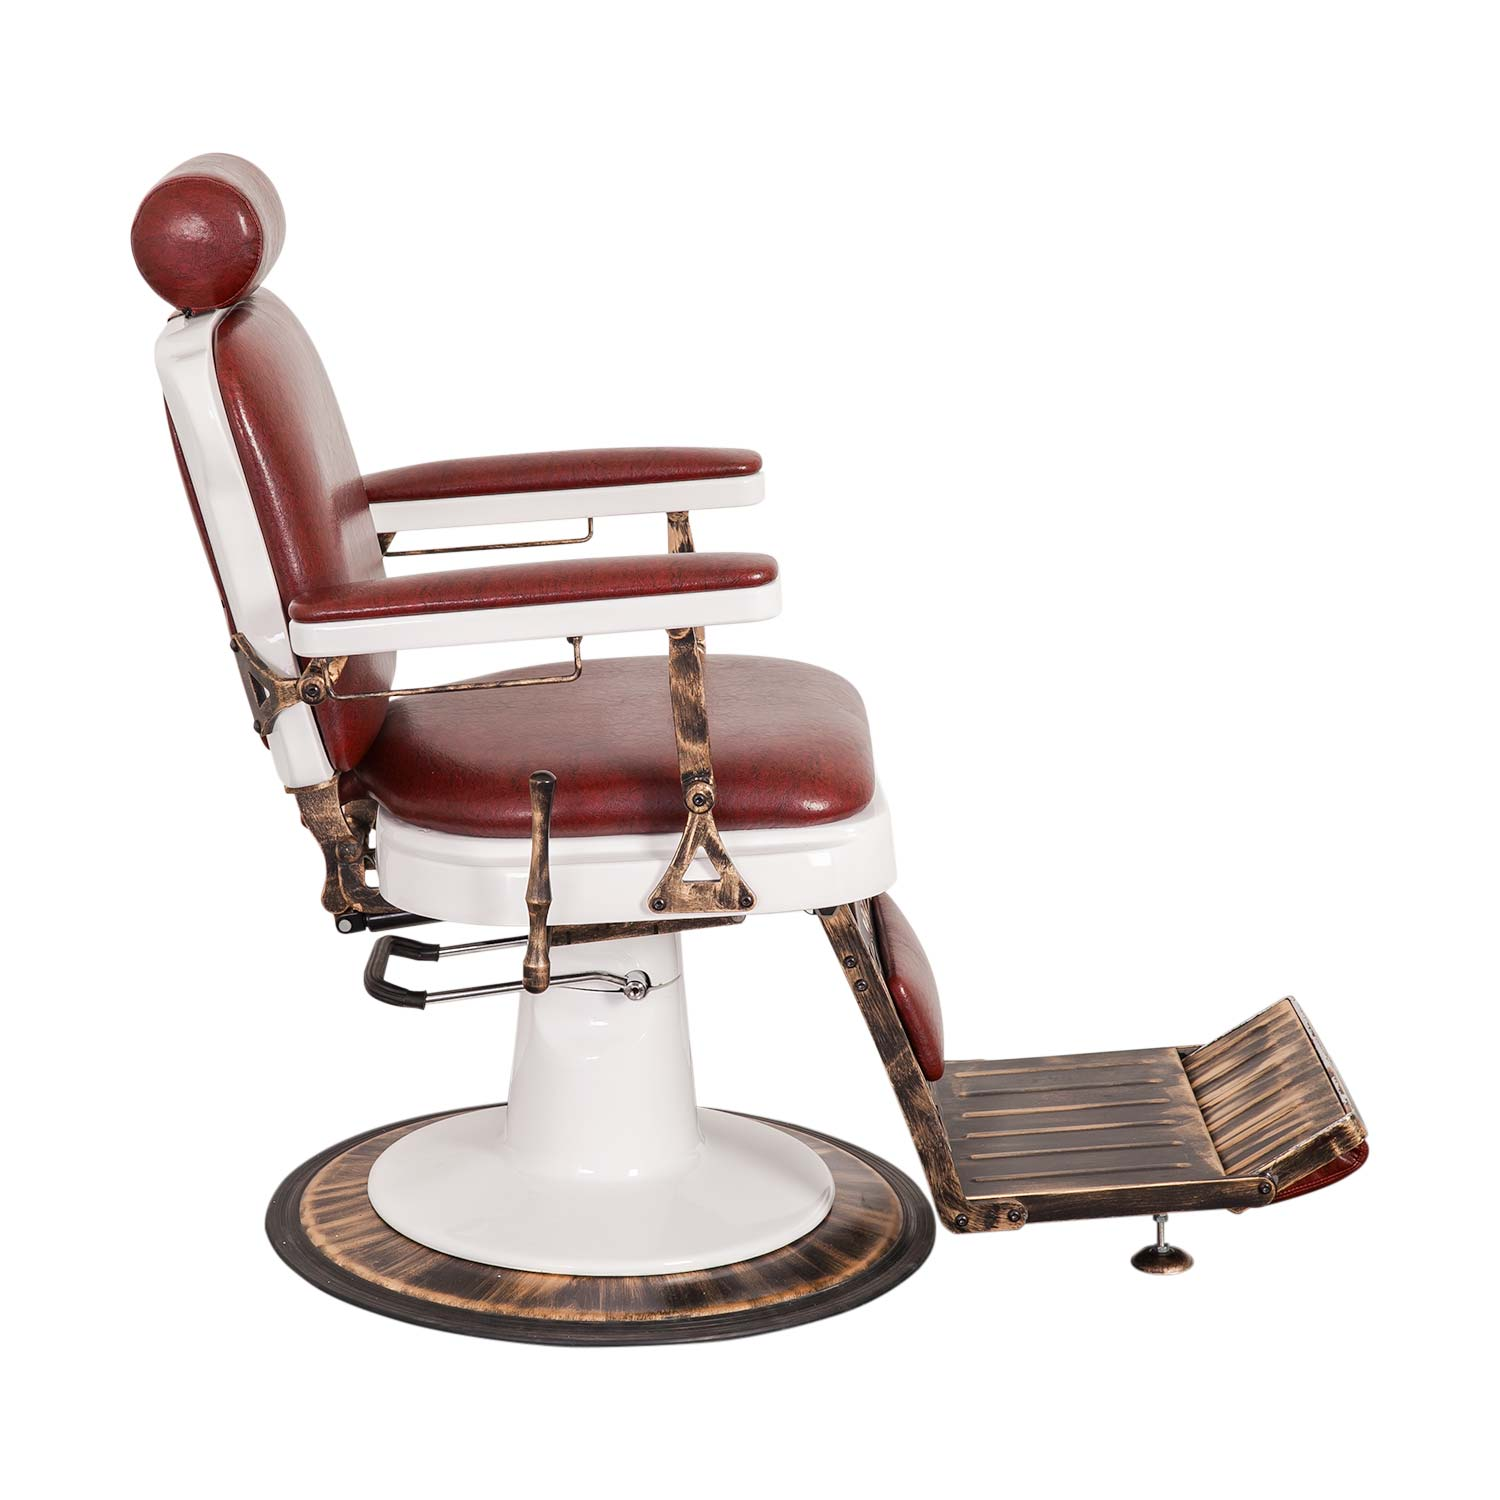 Pibbs 662 King Reclining Barber Chair alternative product image 2